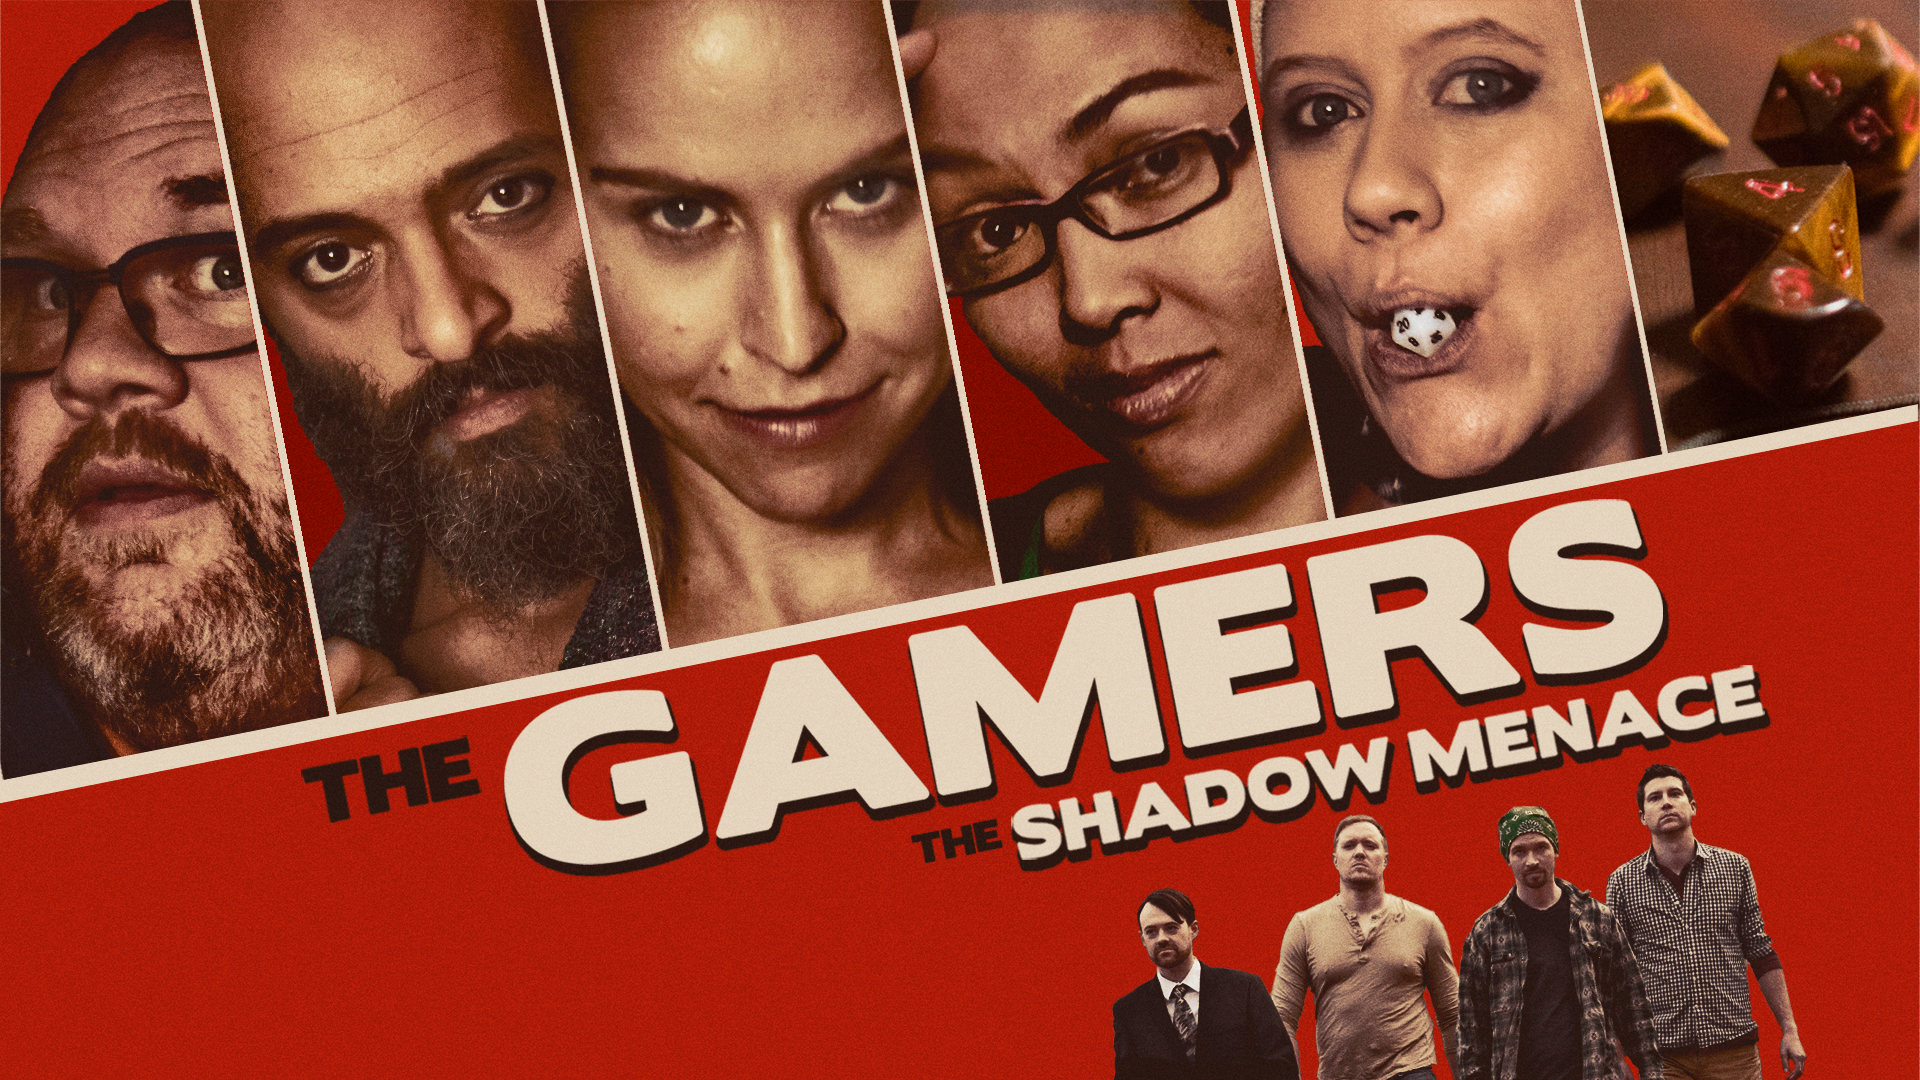 The Gamers The Shadow Menace